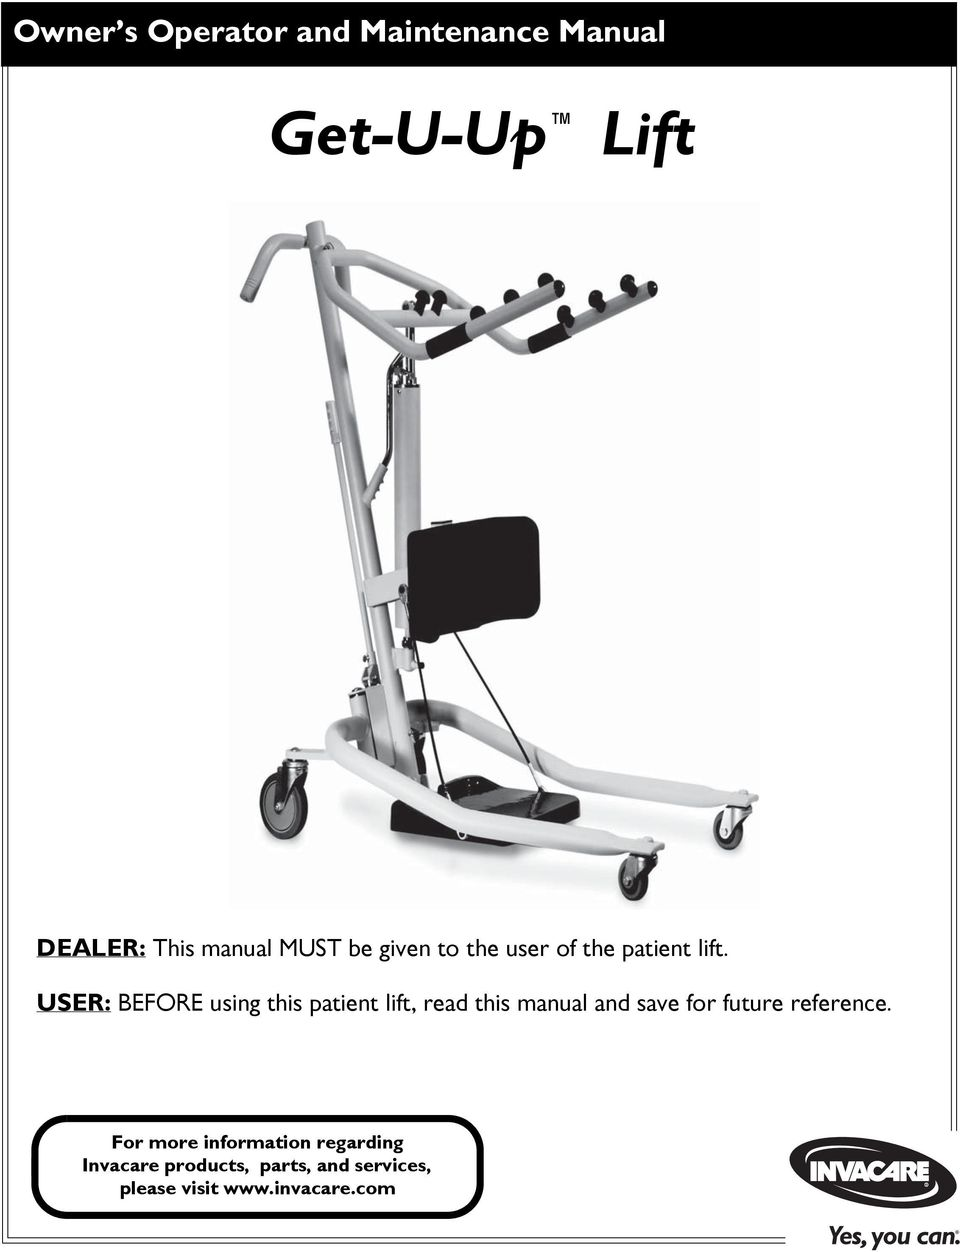 USER: BEFORE using this patient lift, read this manual and save for future